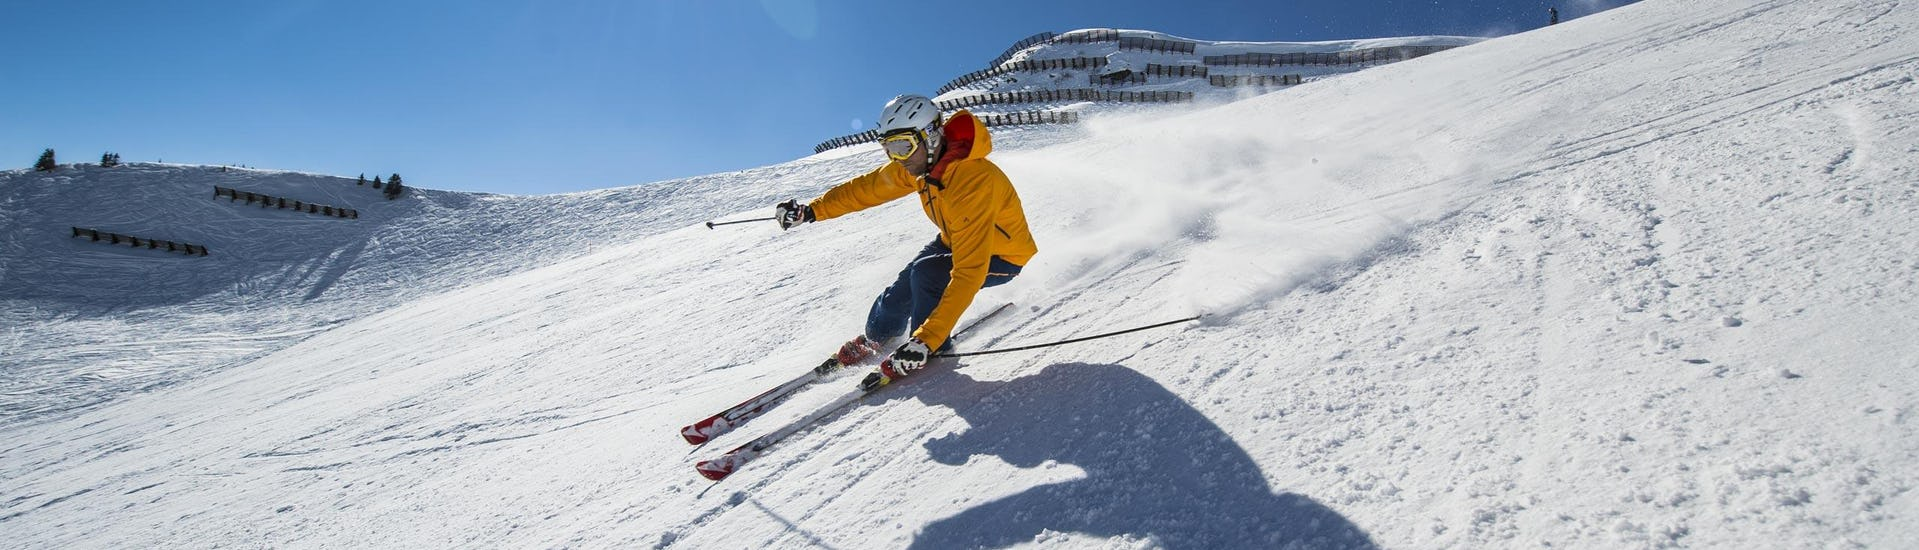 Freestyle for adults: A skier is skiing down a sunny ski slope while participating in an activity offered by Ski school Ski Zenit.